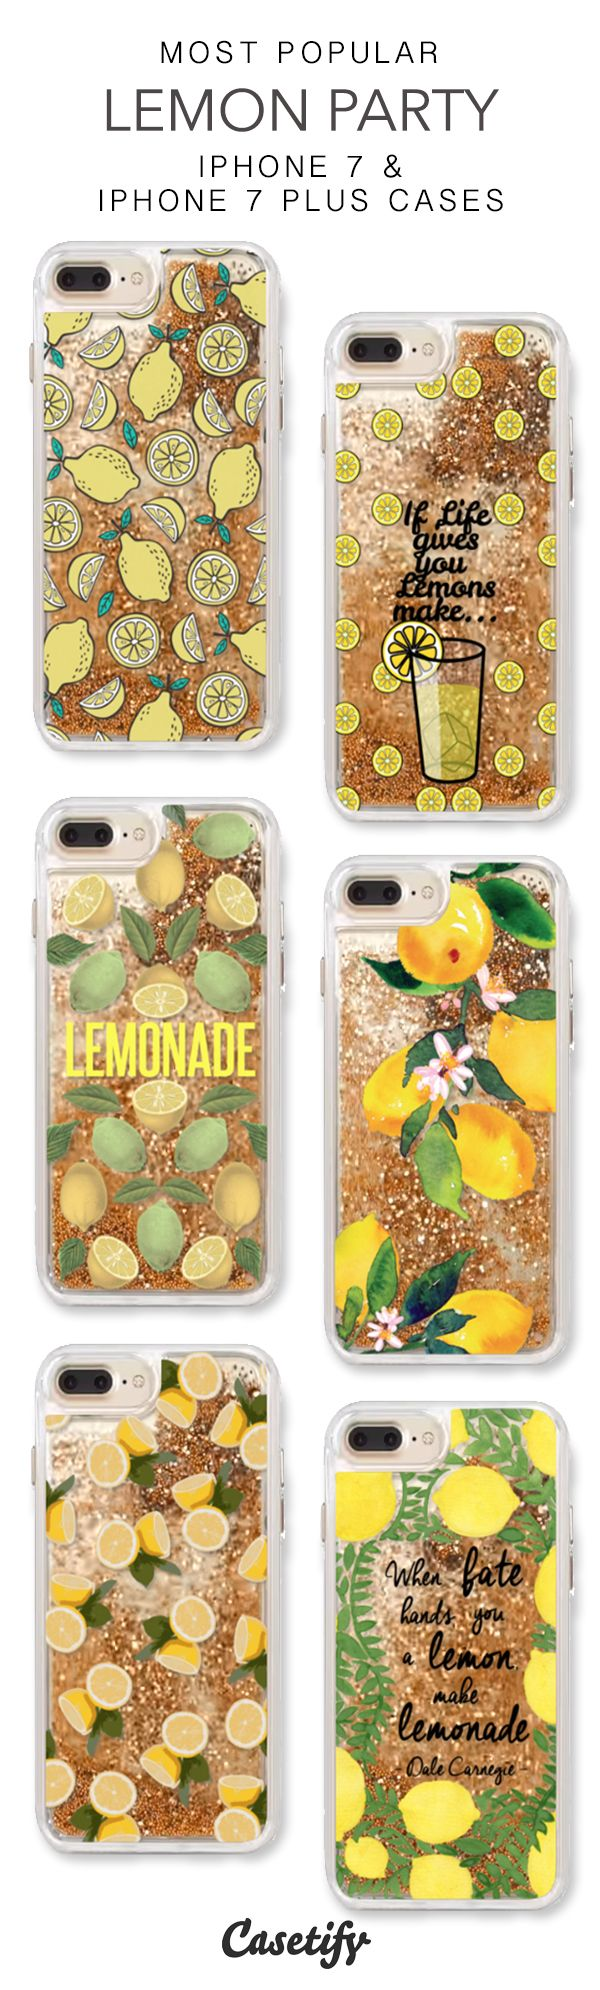 Most Popular Lemon Party iPhone 7 Cases & iPhone 7 Plus Cases. More liquid glitter iPhone case here > https://www.casetify.com/en_US/collections/iphone-7-glitter-cases#/?vc=waSEkxgm58